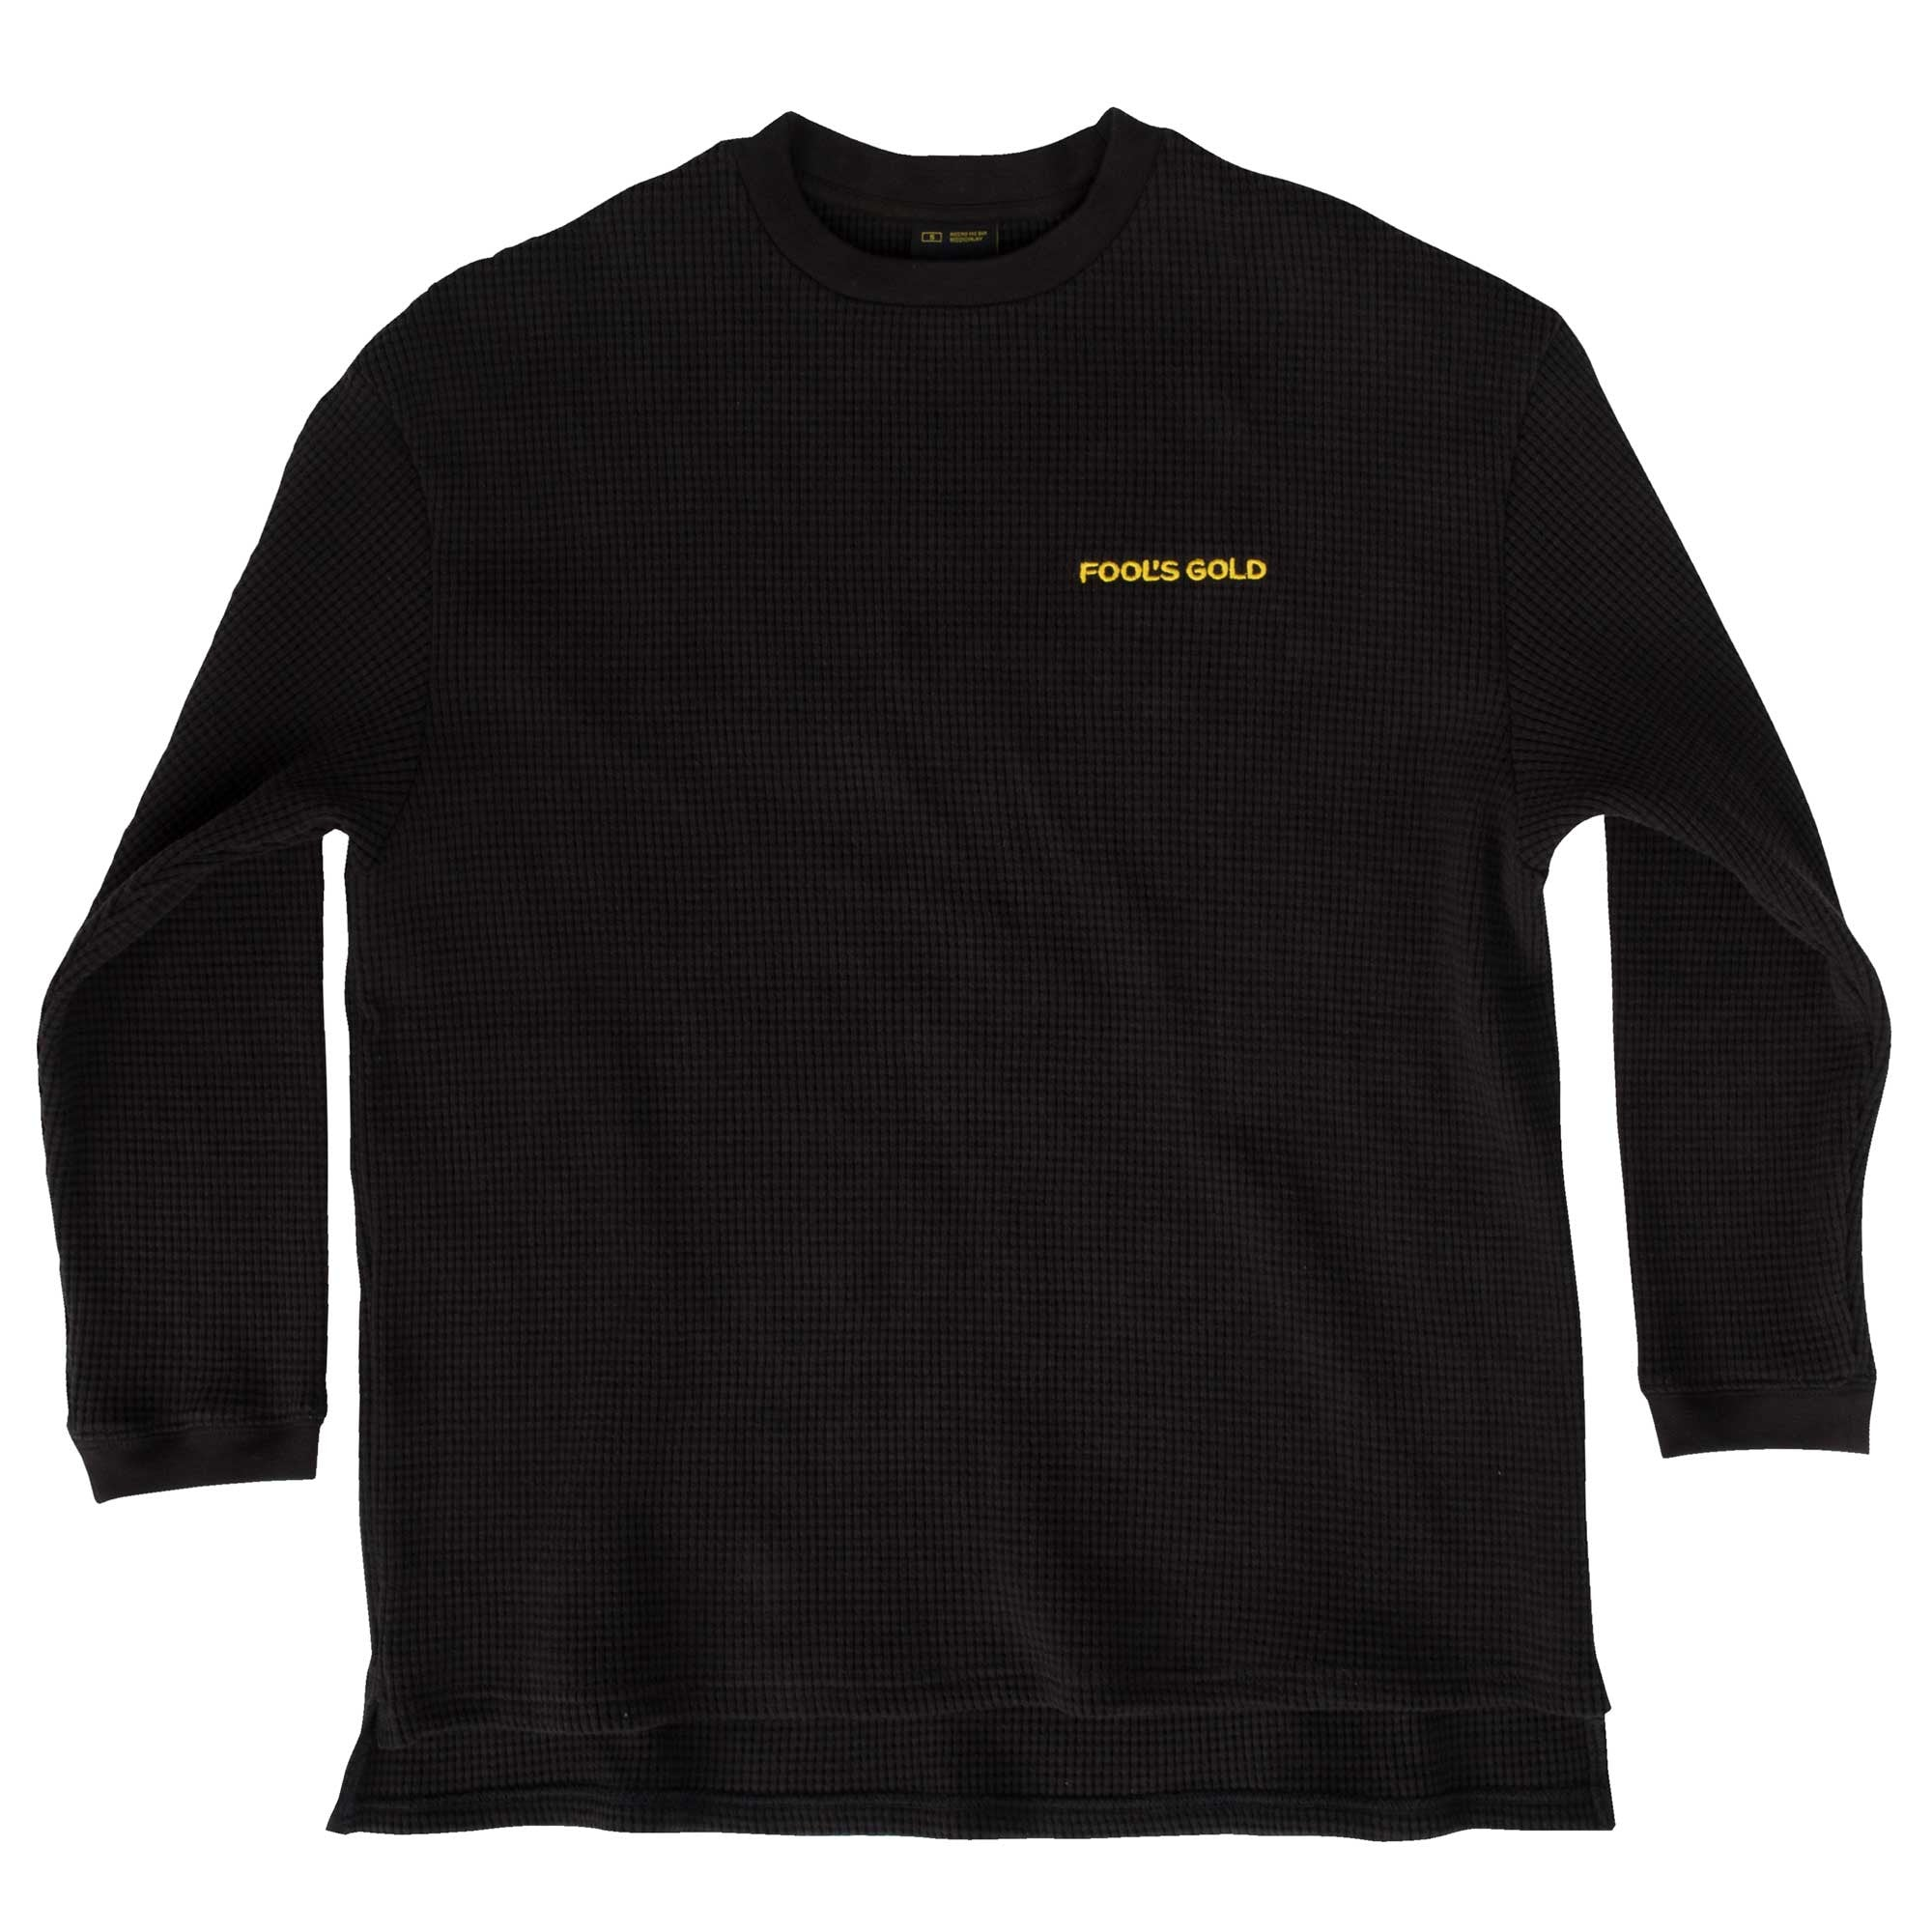 "Fool's Gold ""Spell Out"" Embroidered Thermal - Black"